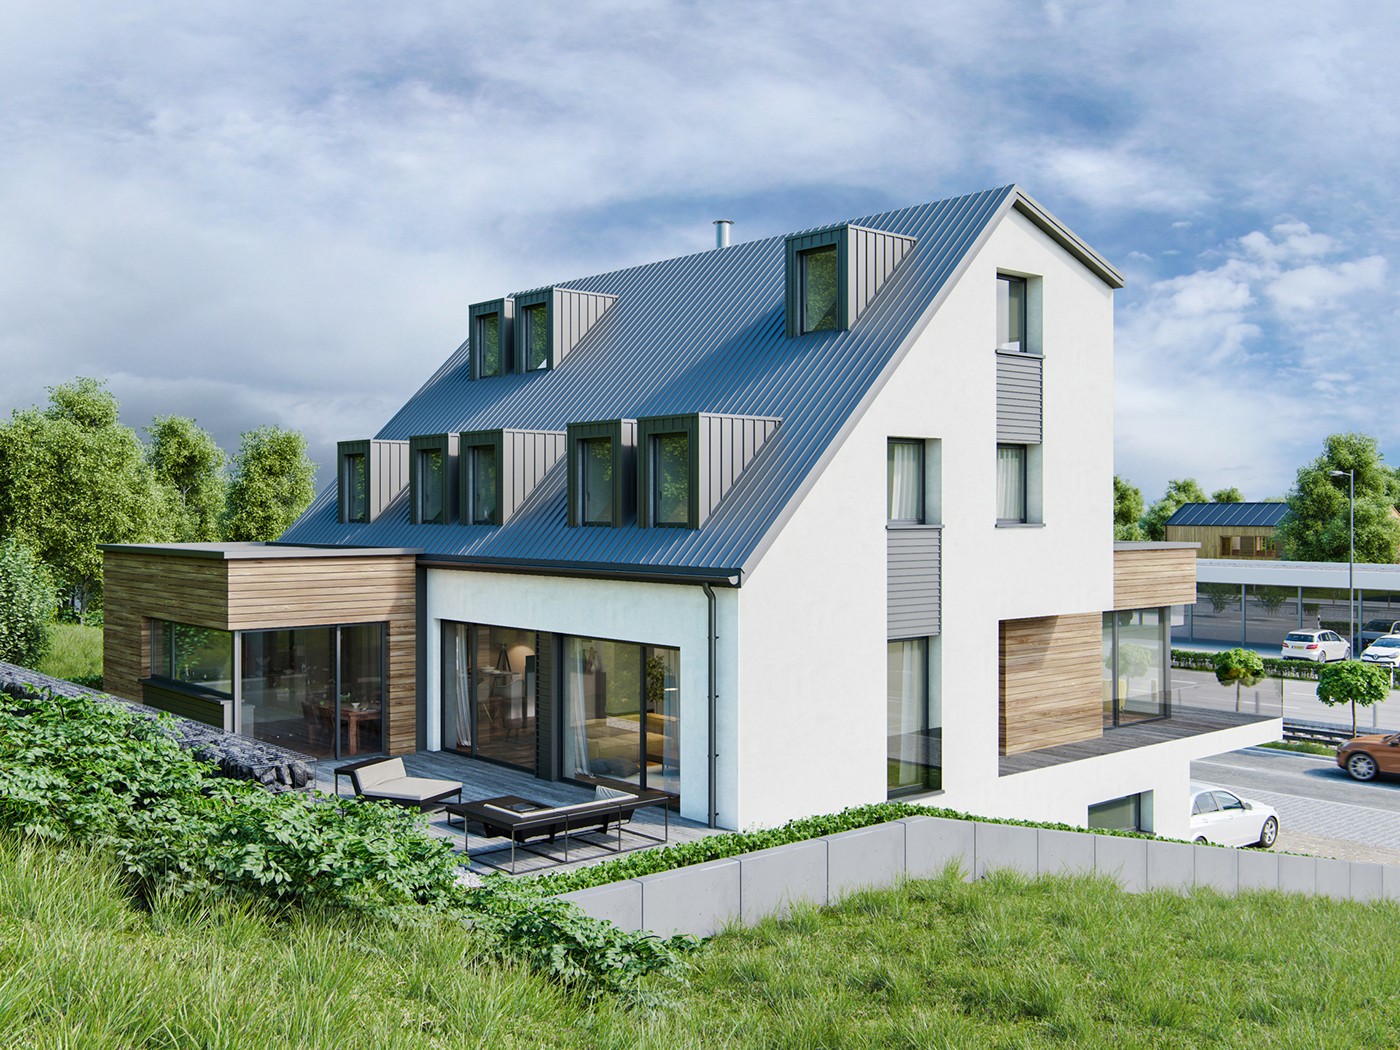 House in luxembourg on behance for Luxembourg house